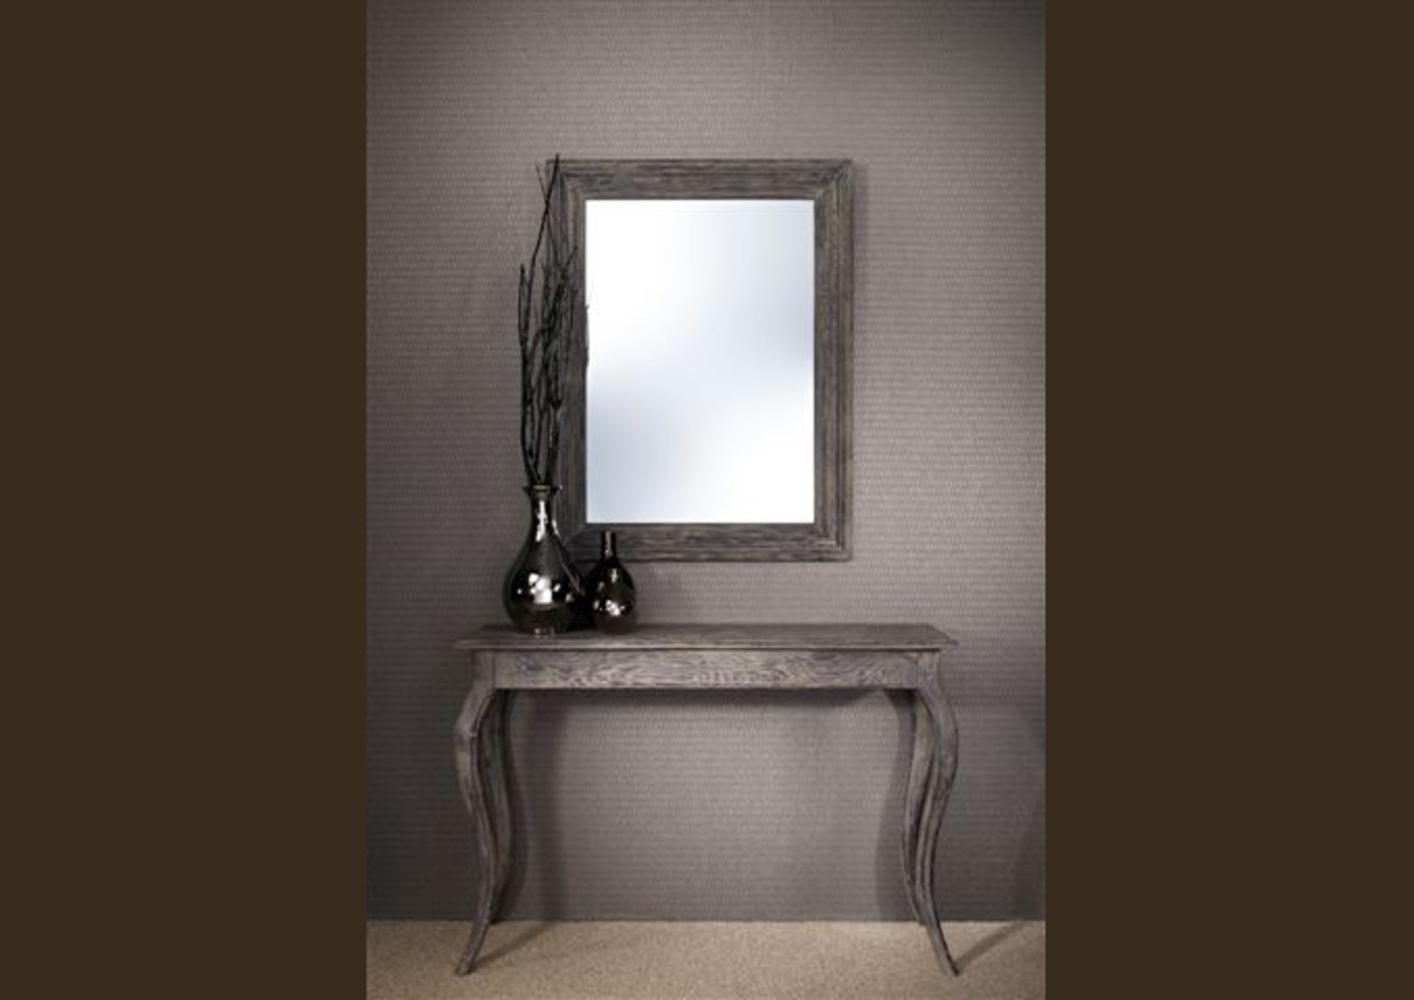 acheter votre miroir console assortie en option chez simeuble. Black Bedroom Furniture Sets. Home Design Ideas